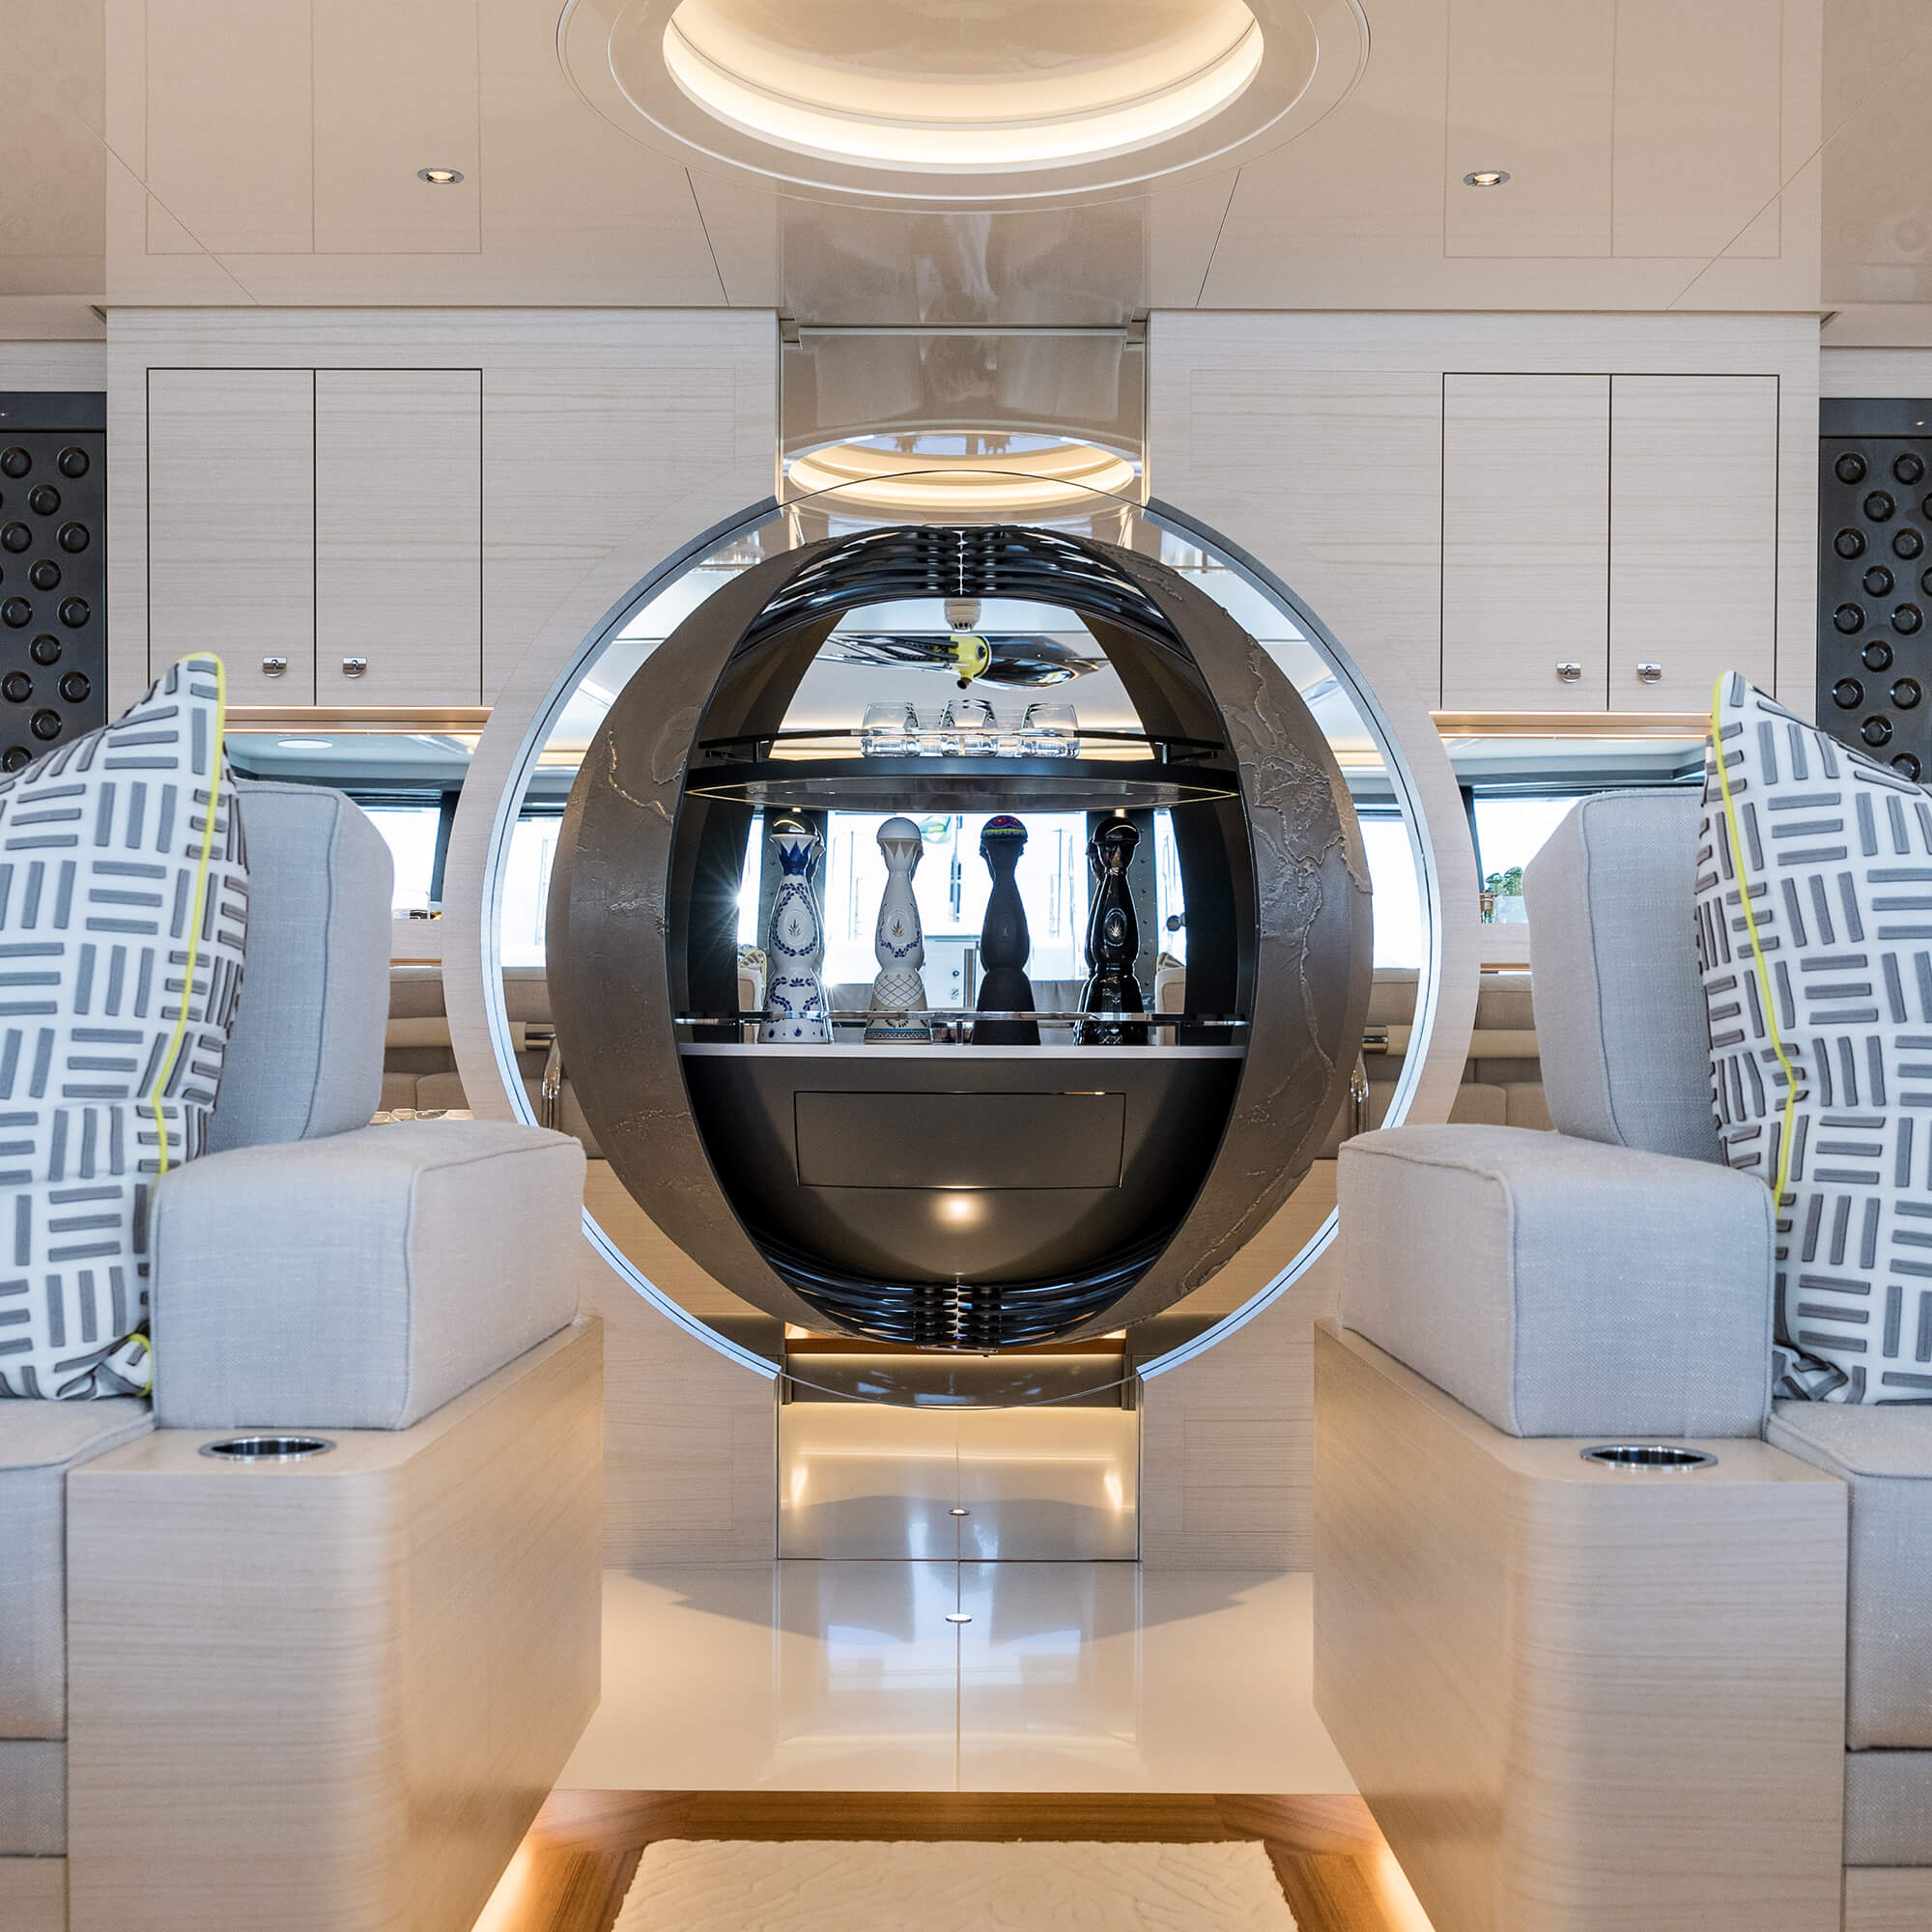 Wall-mounted drinks cabinet by Splinterworks on the Scout super yacht